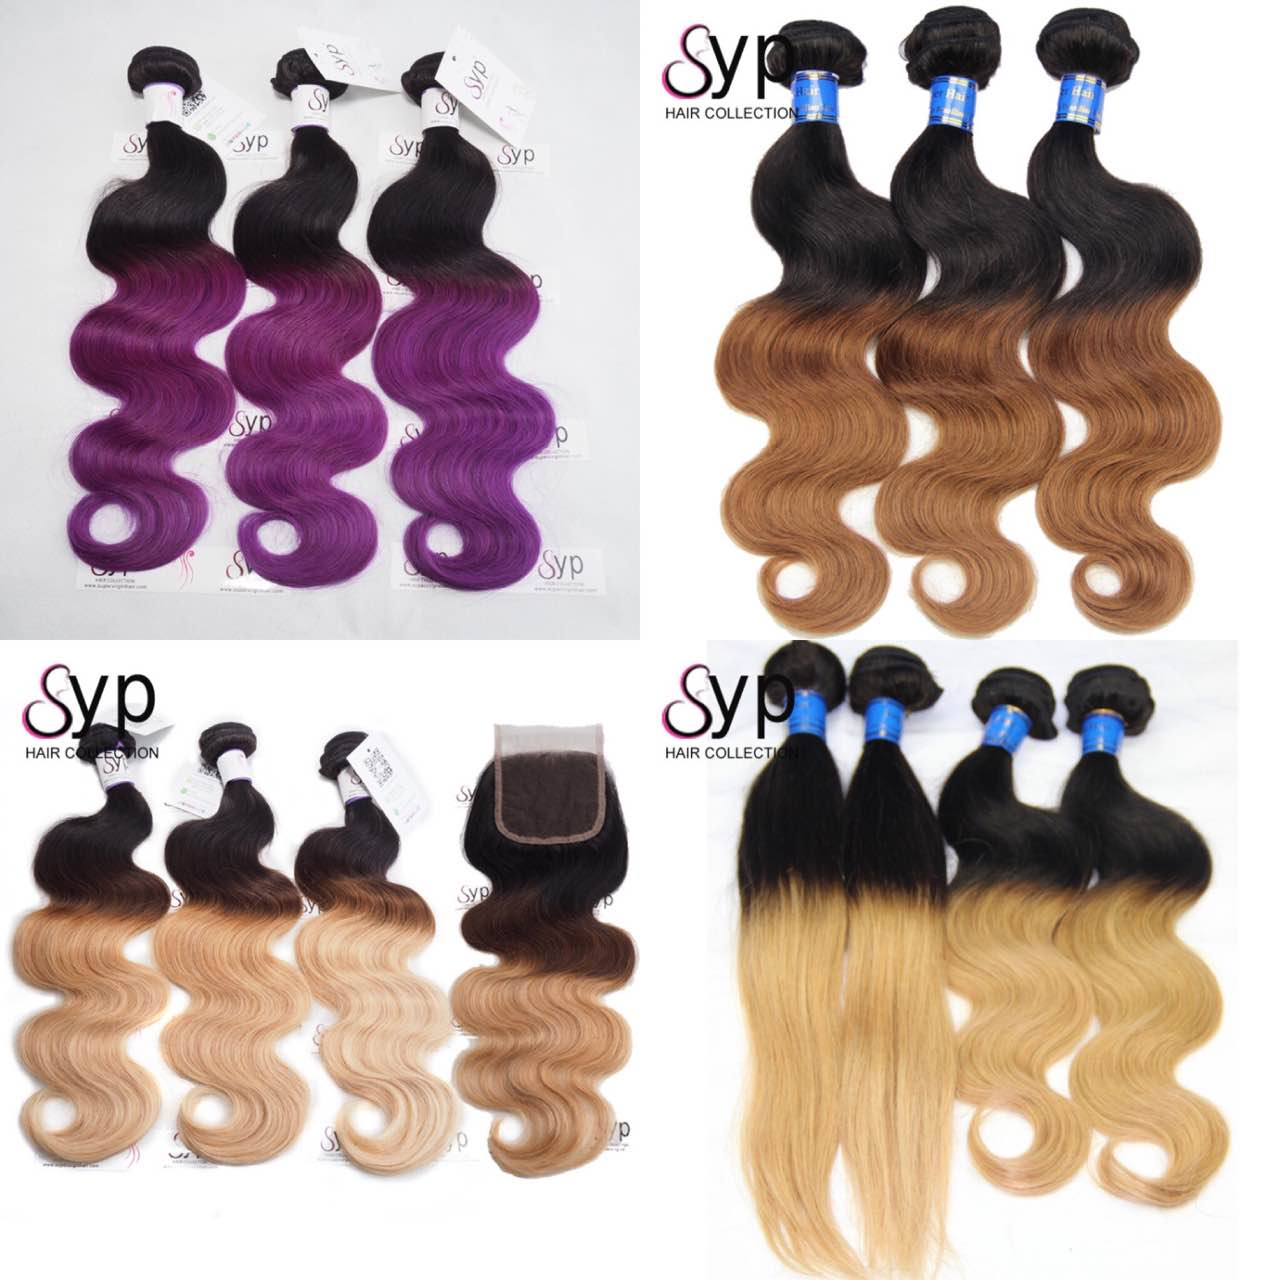 Dark Root Pink Ombre Hair Bundle, 1b 422 Ombre Straight Body Wave Brazilian Hair Weft Colored Virgin Extension Weave